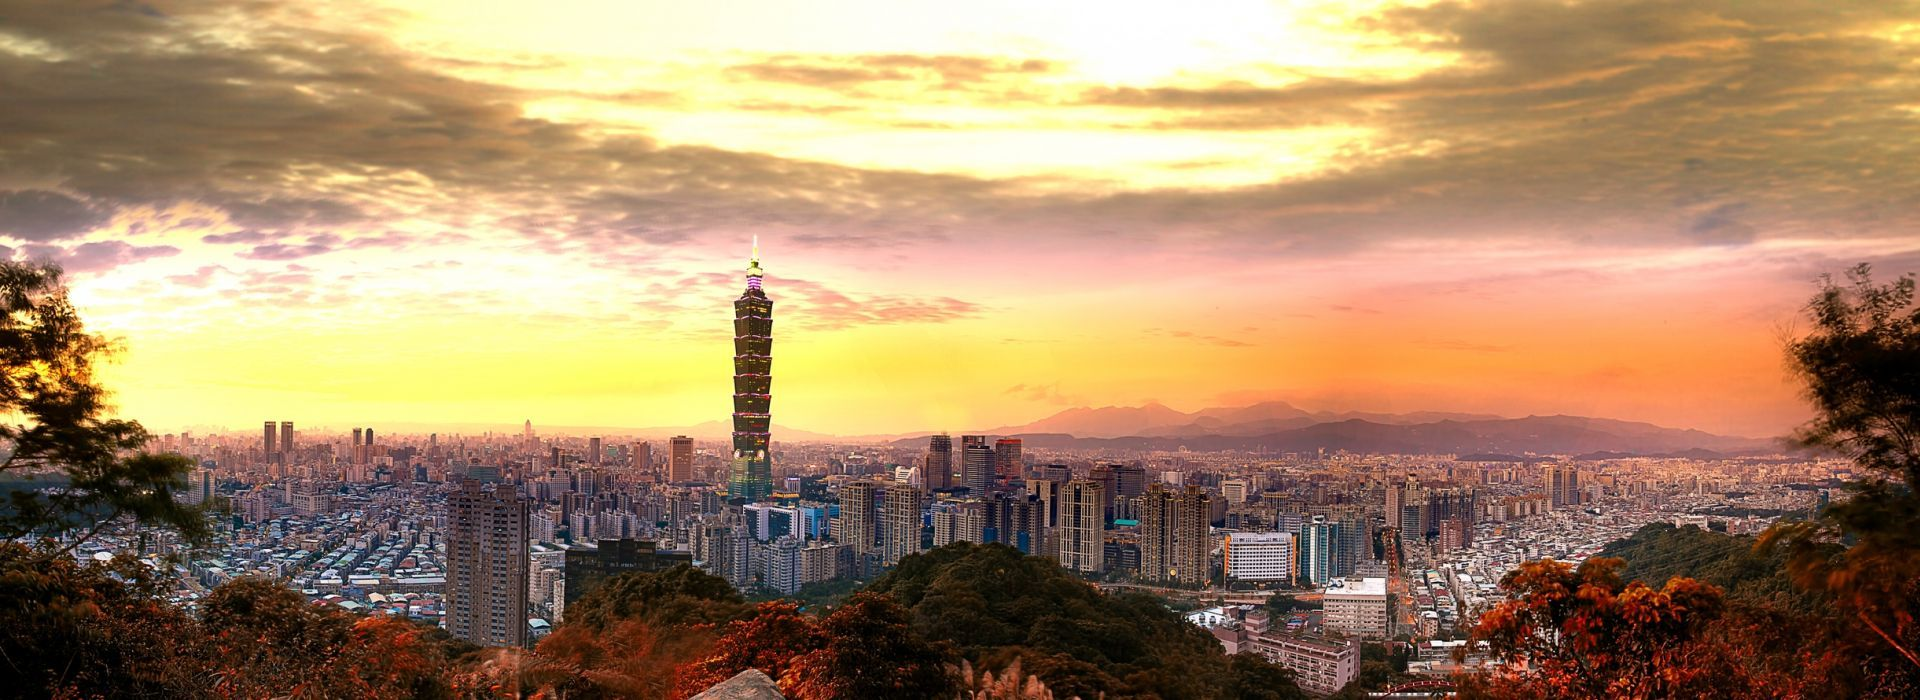 Sightseeing, attractions, culture and history Tours in Taipei